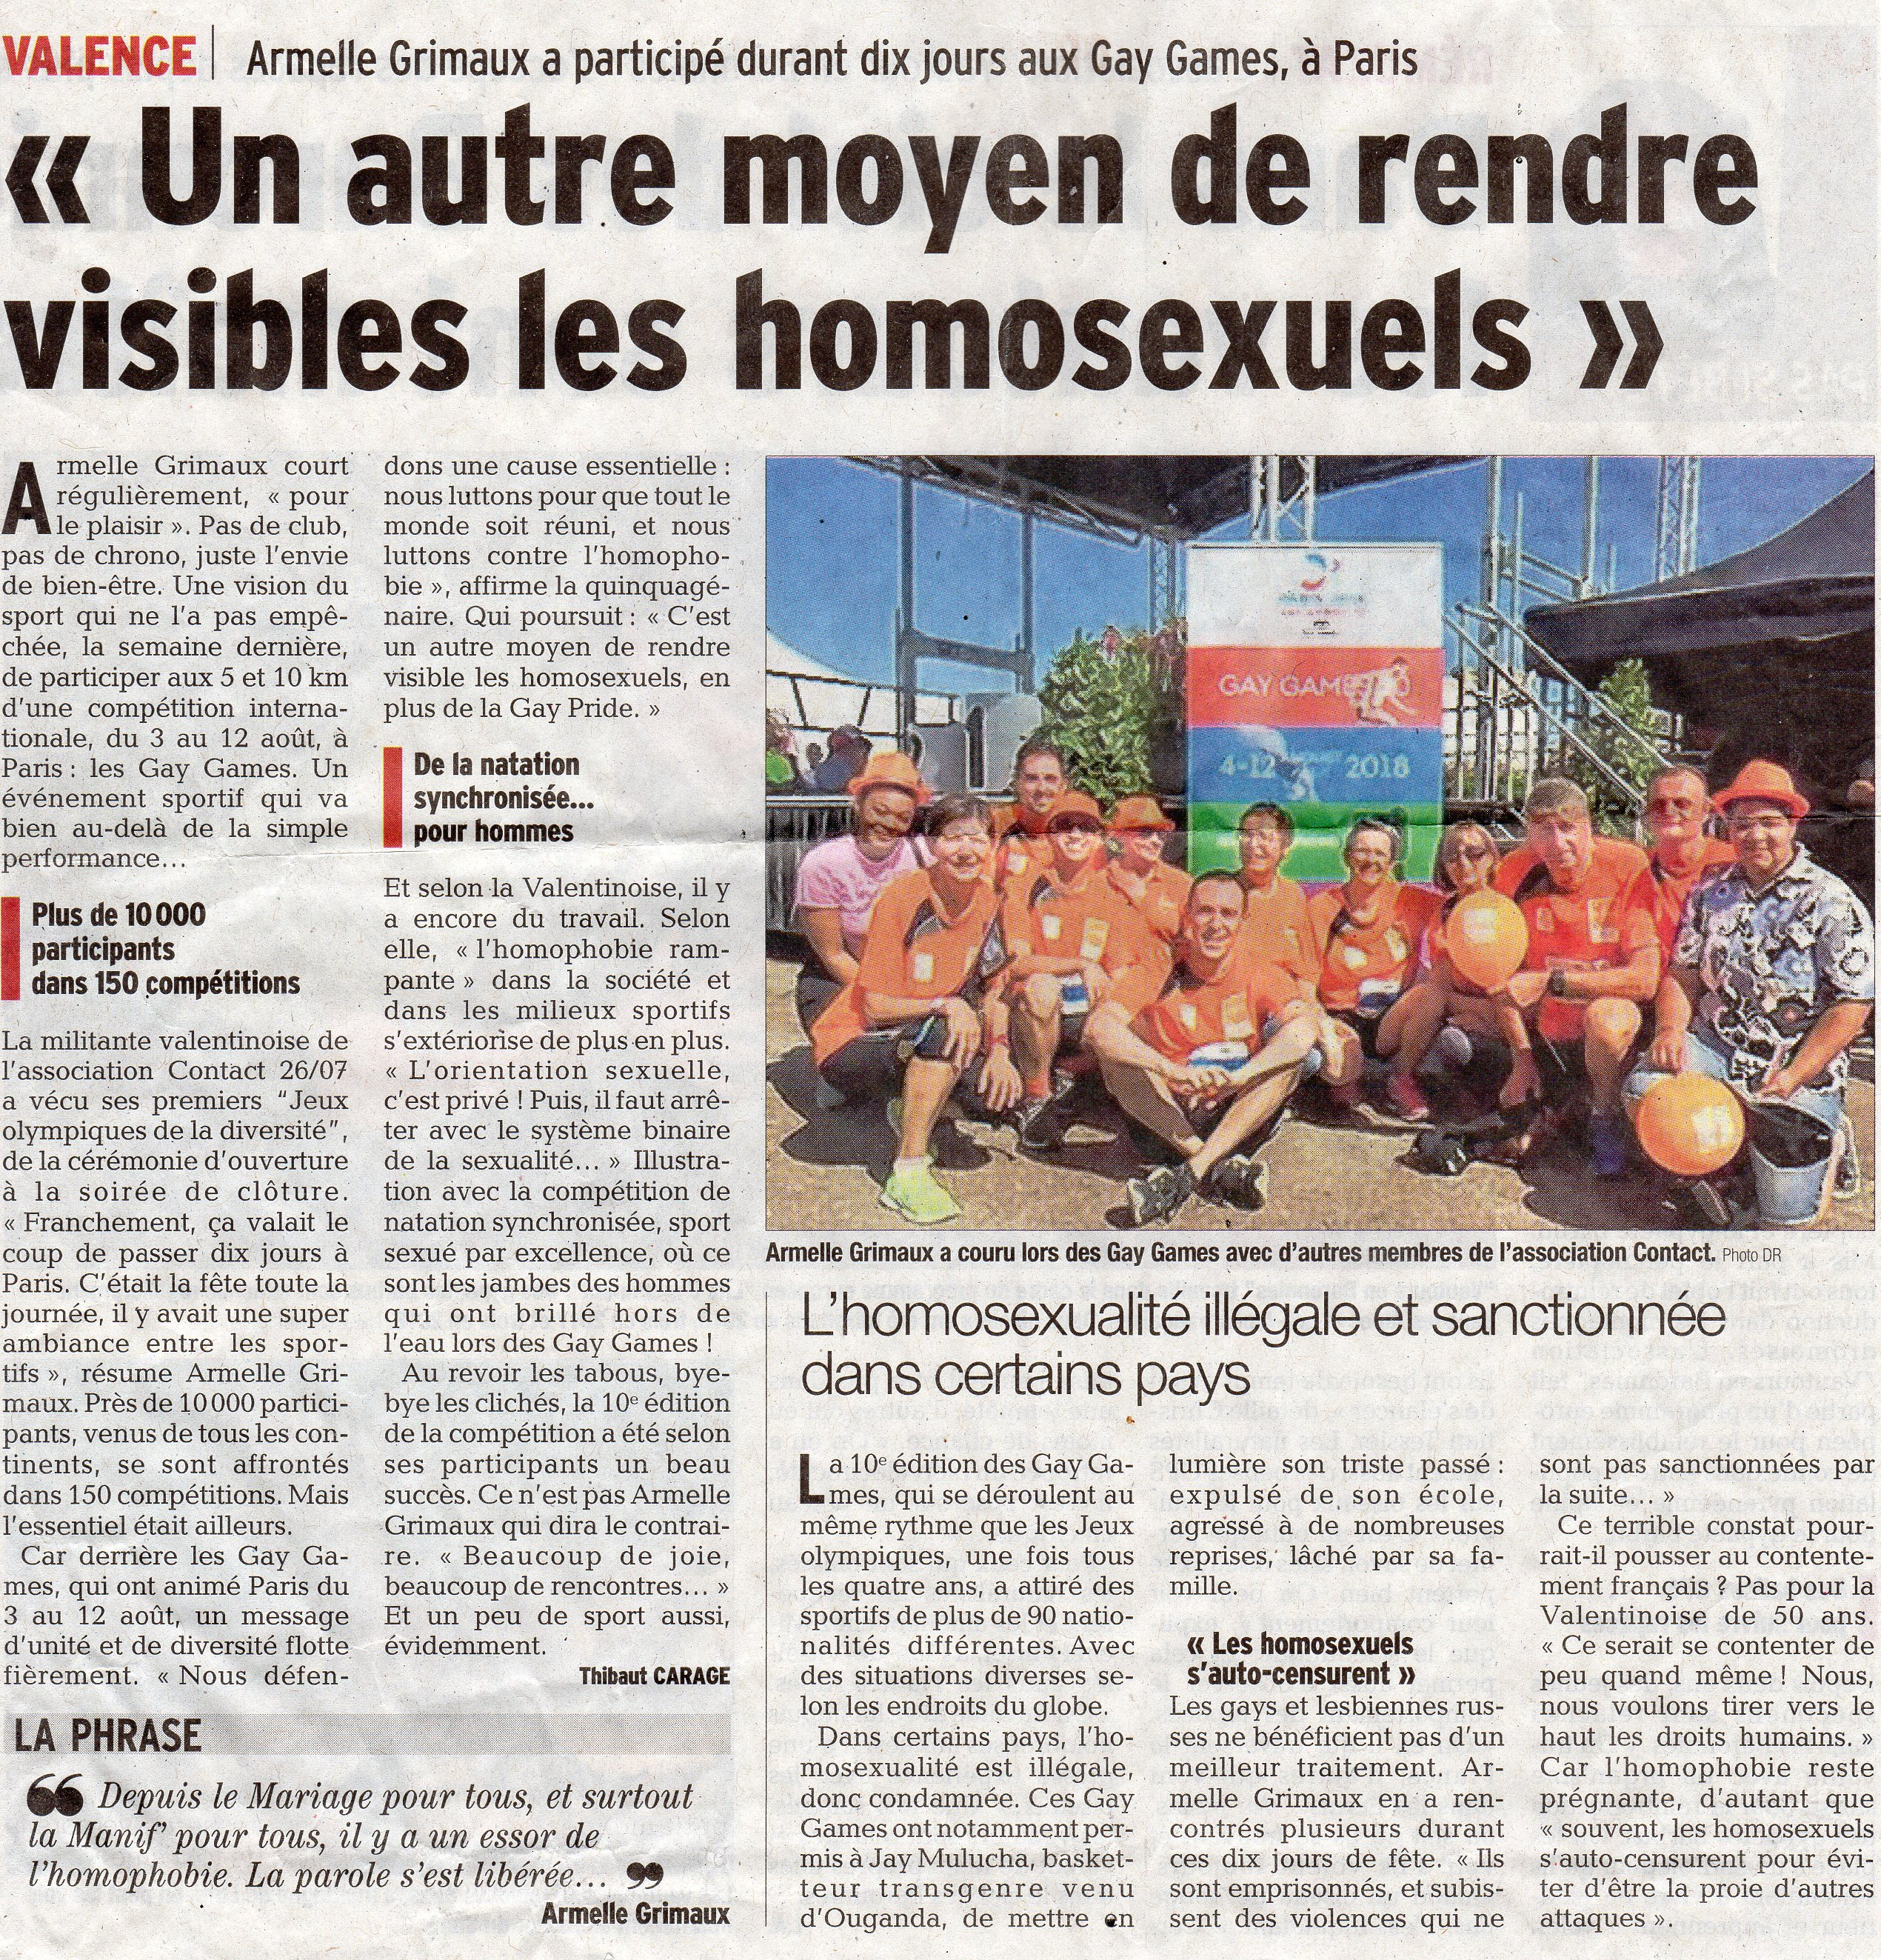 180817_dl_article_gaygames.jpg